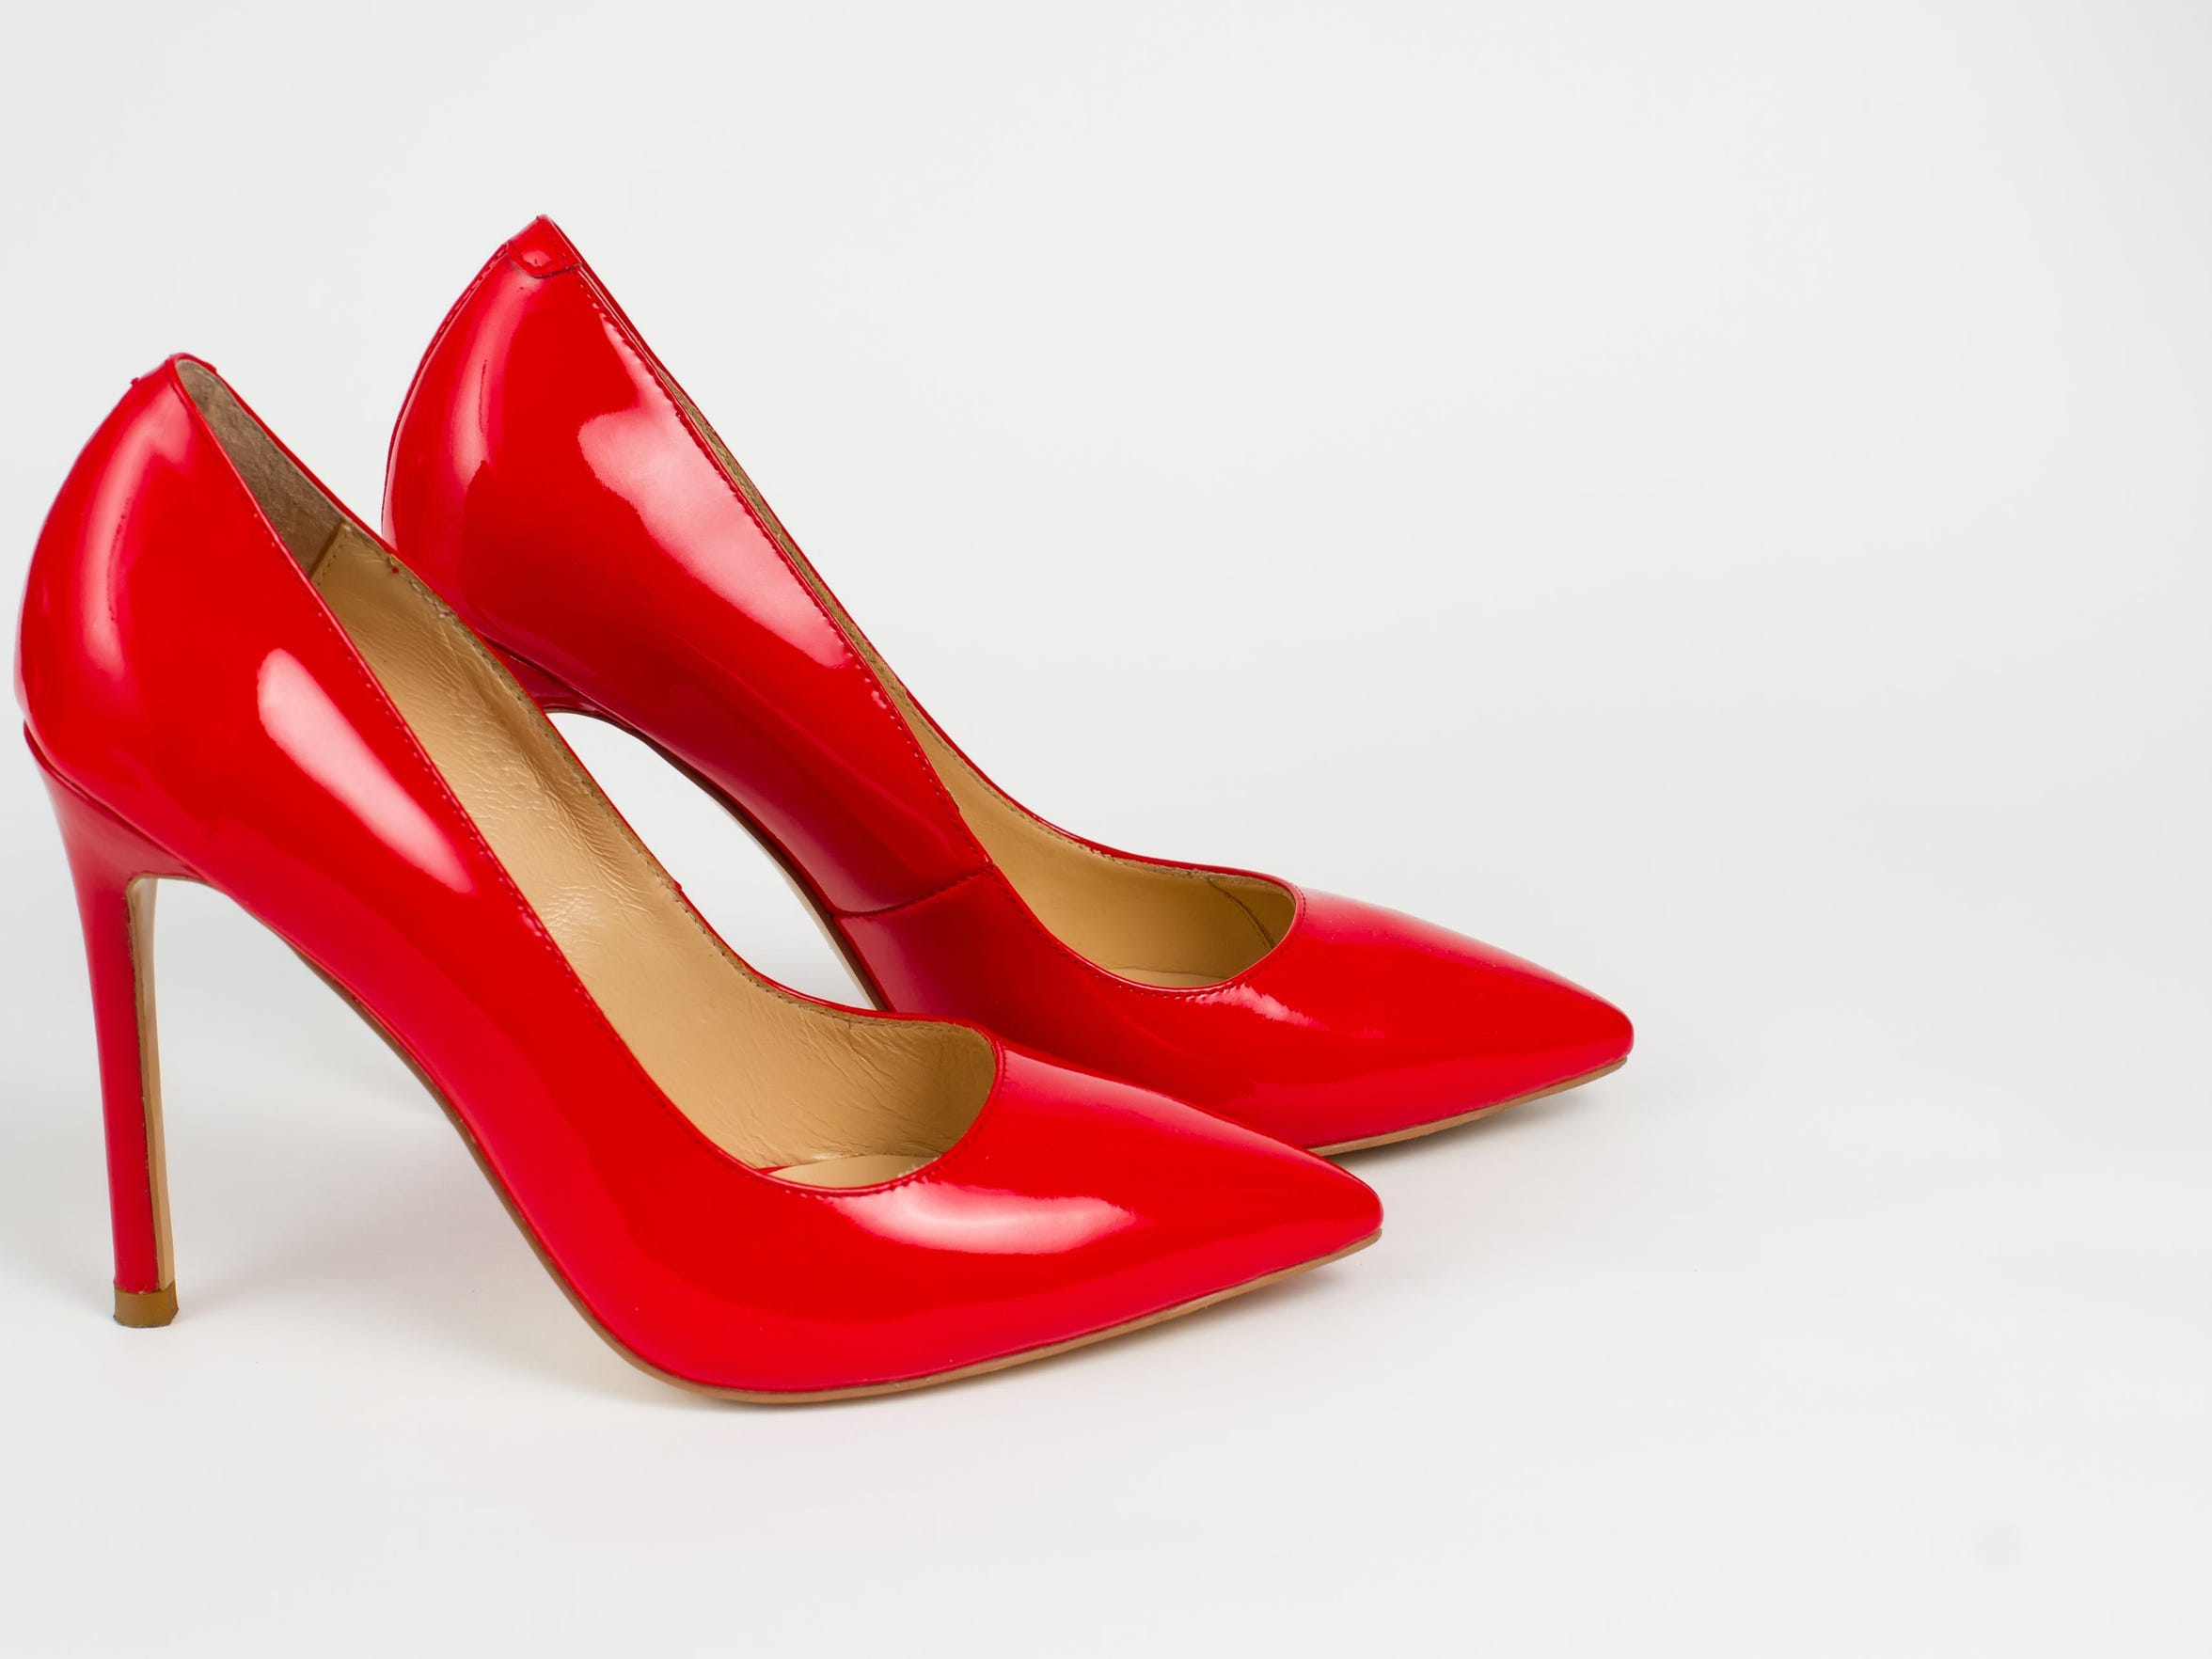 Red high-heeled shoes.